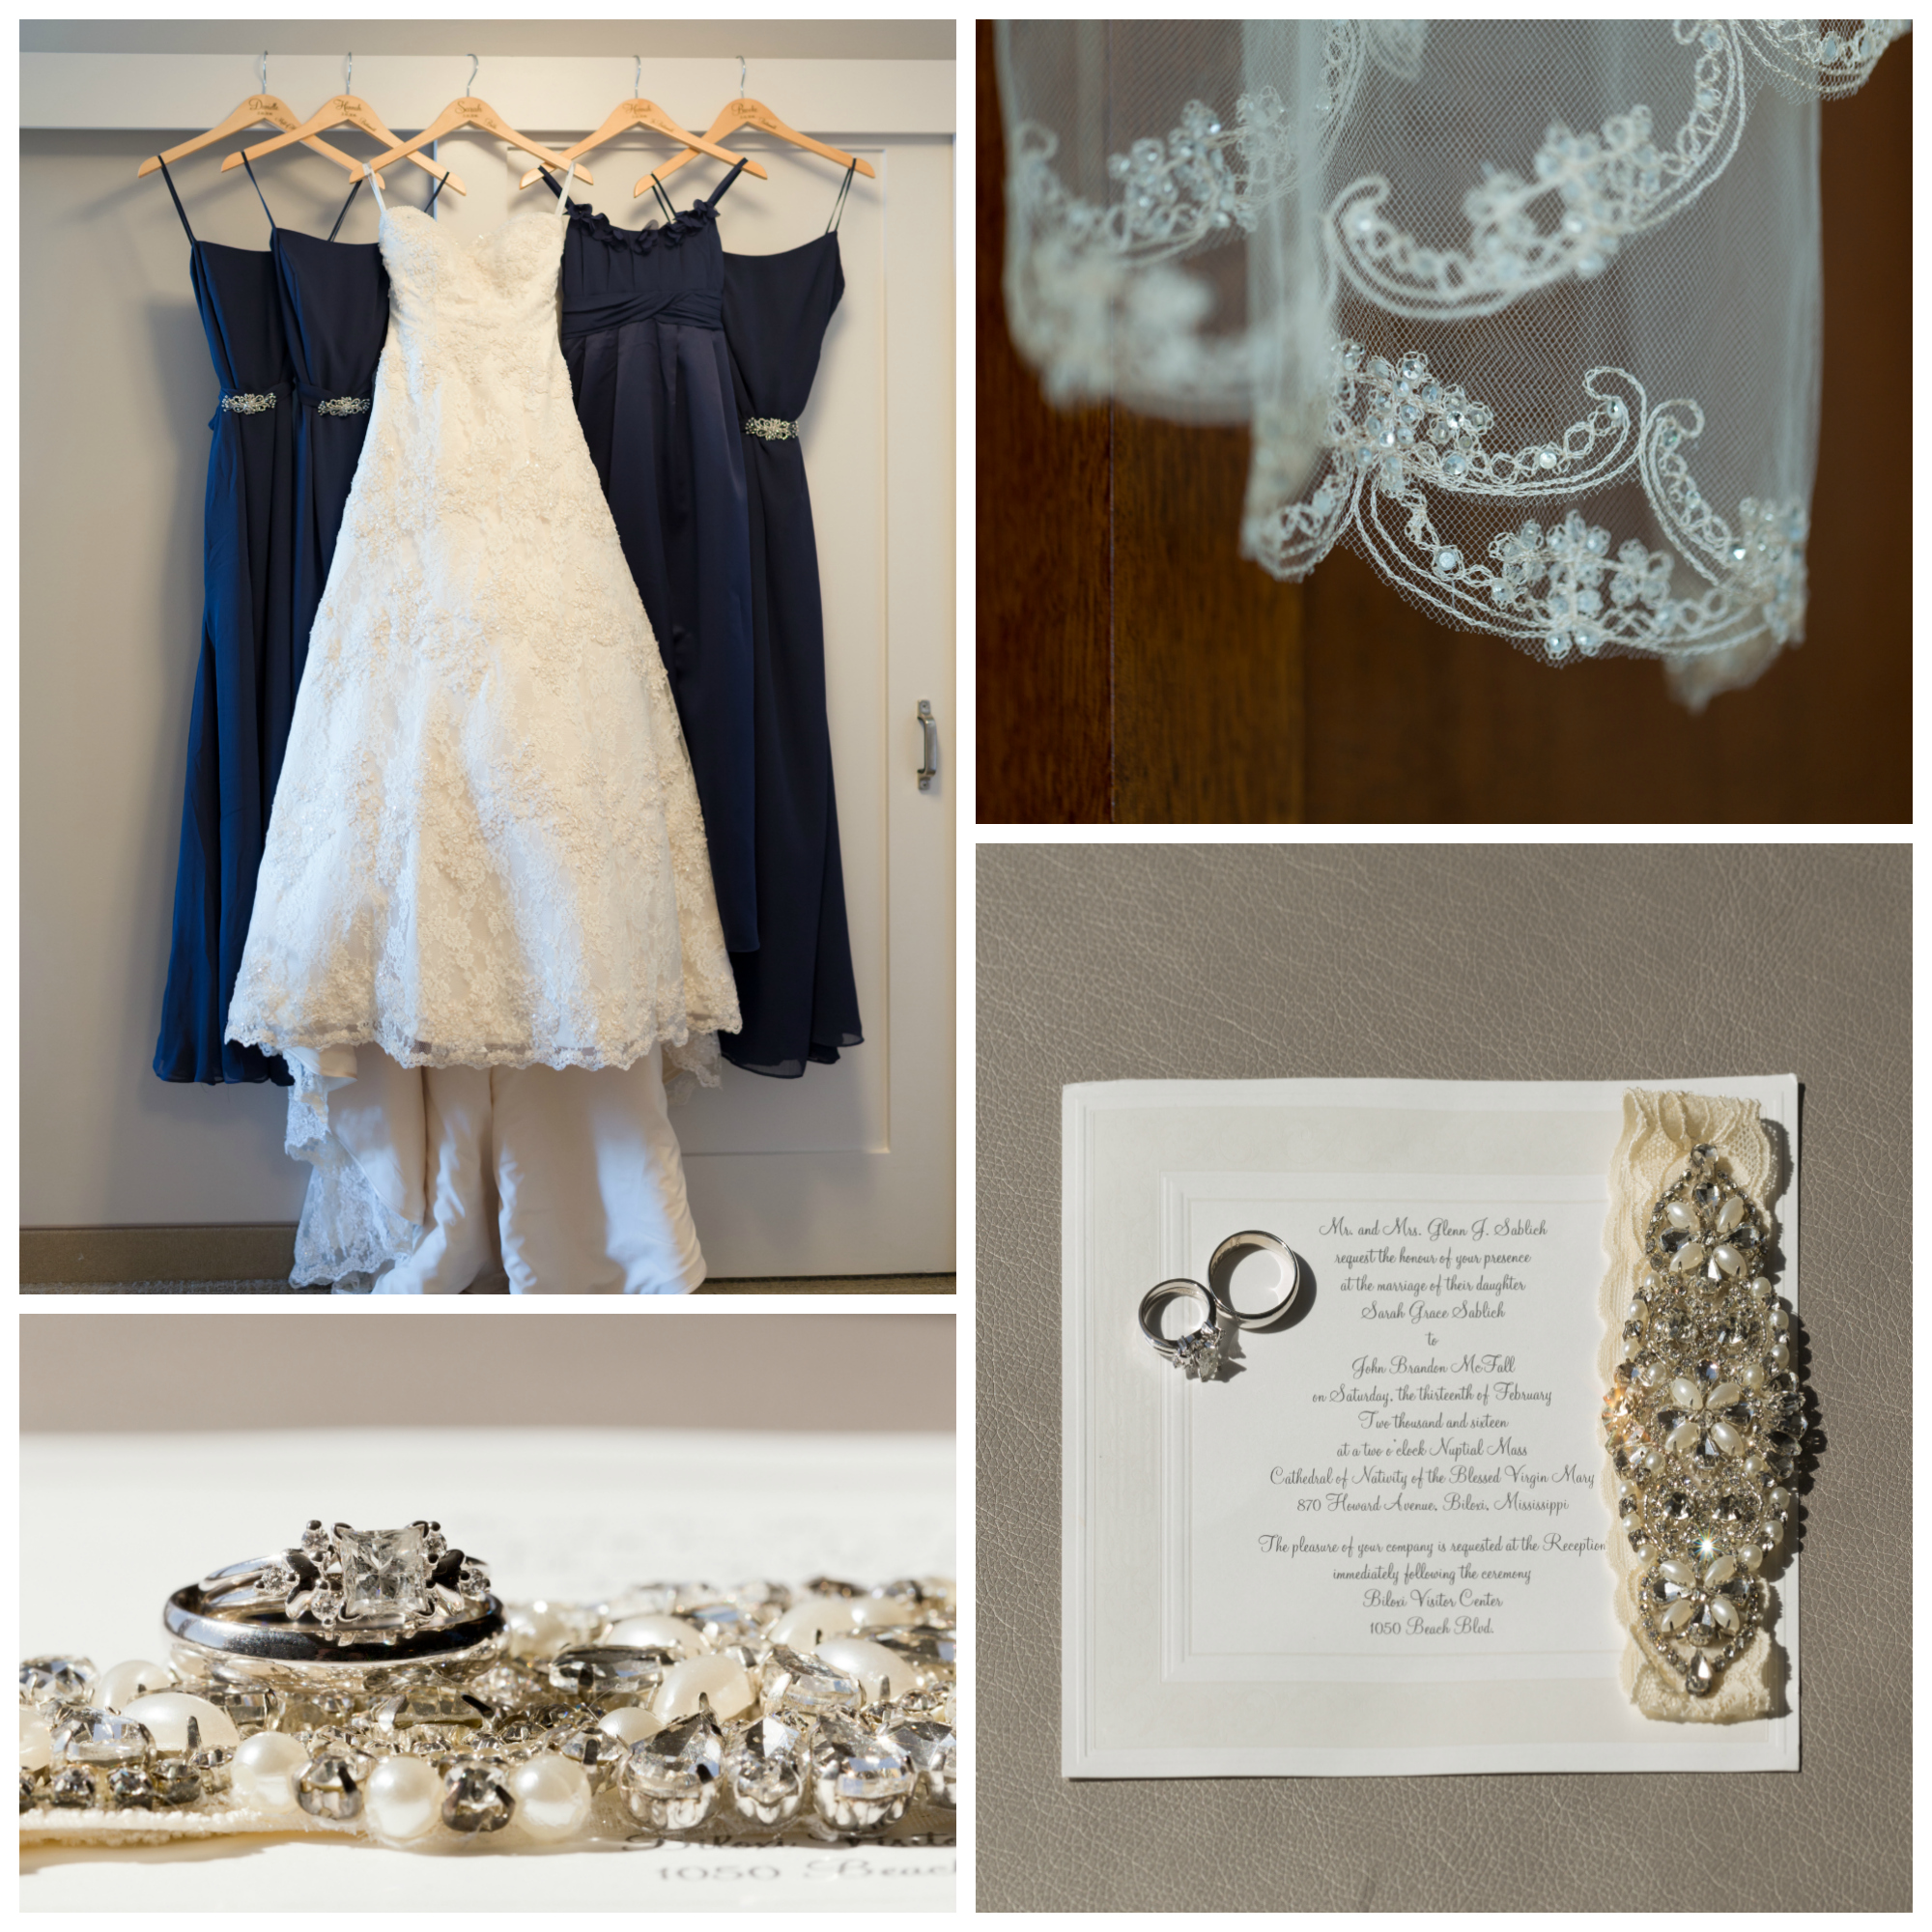 lace wedding dress and veil, navy blue bridesmaids dresses, rings, garter, and invitation details